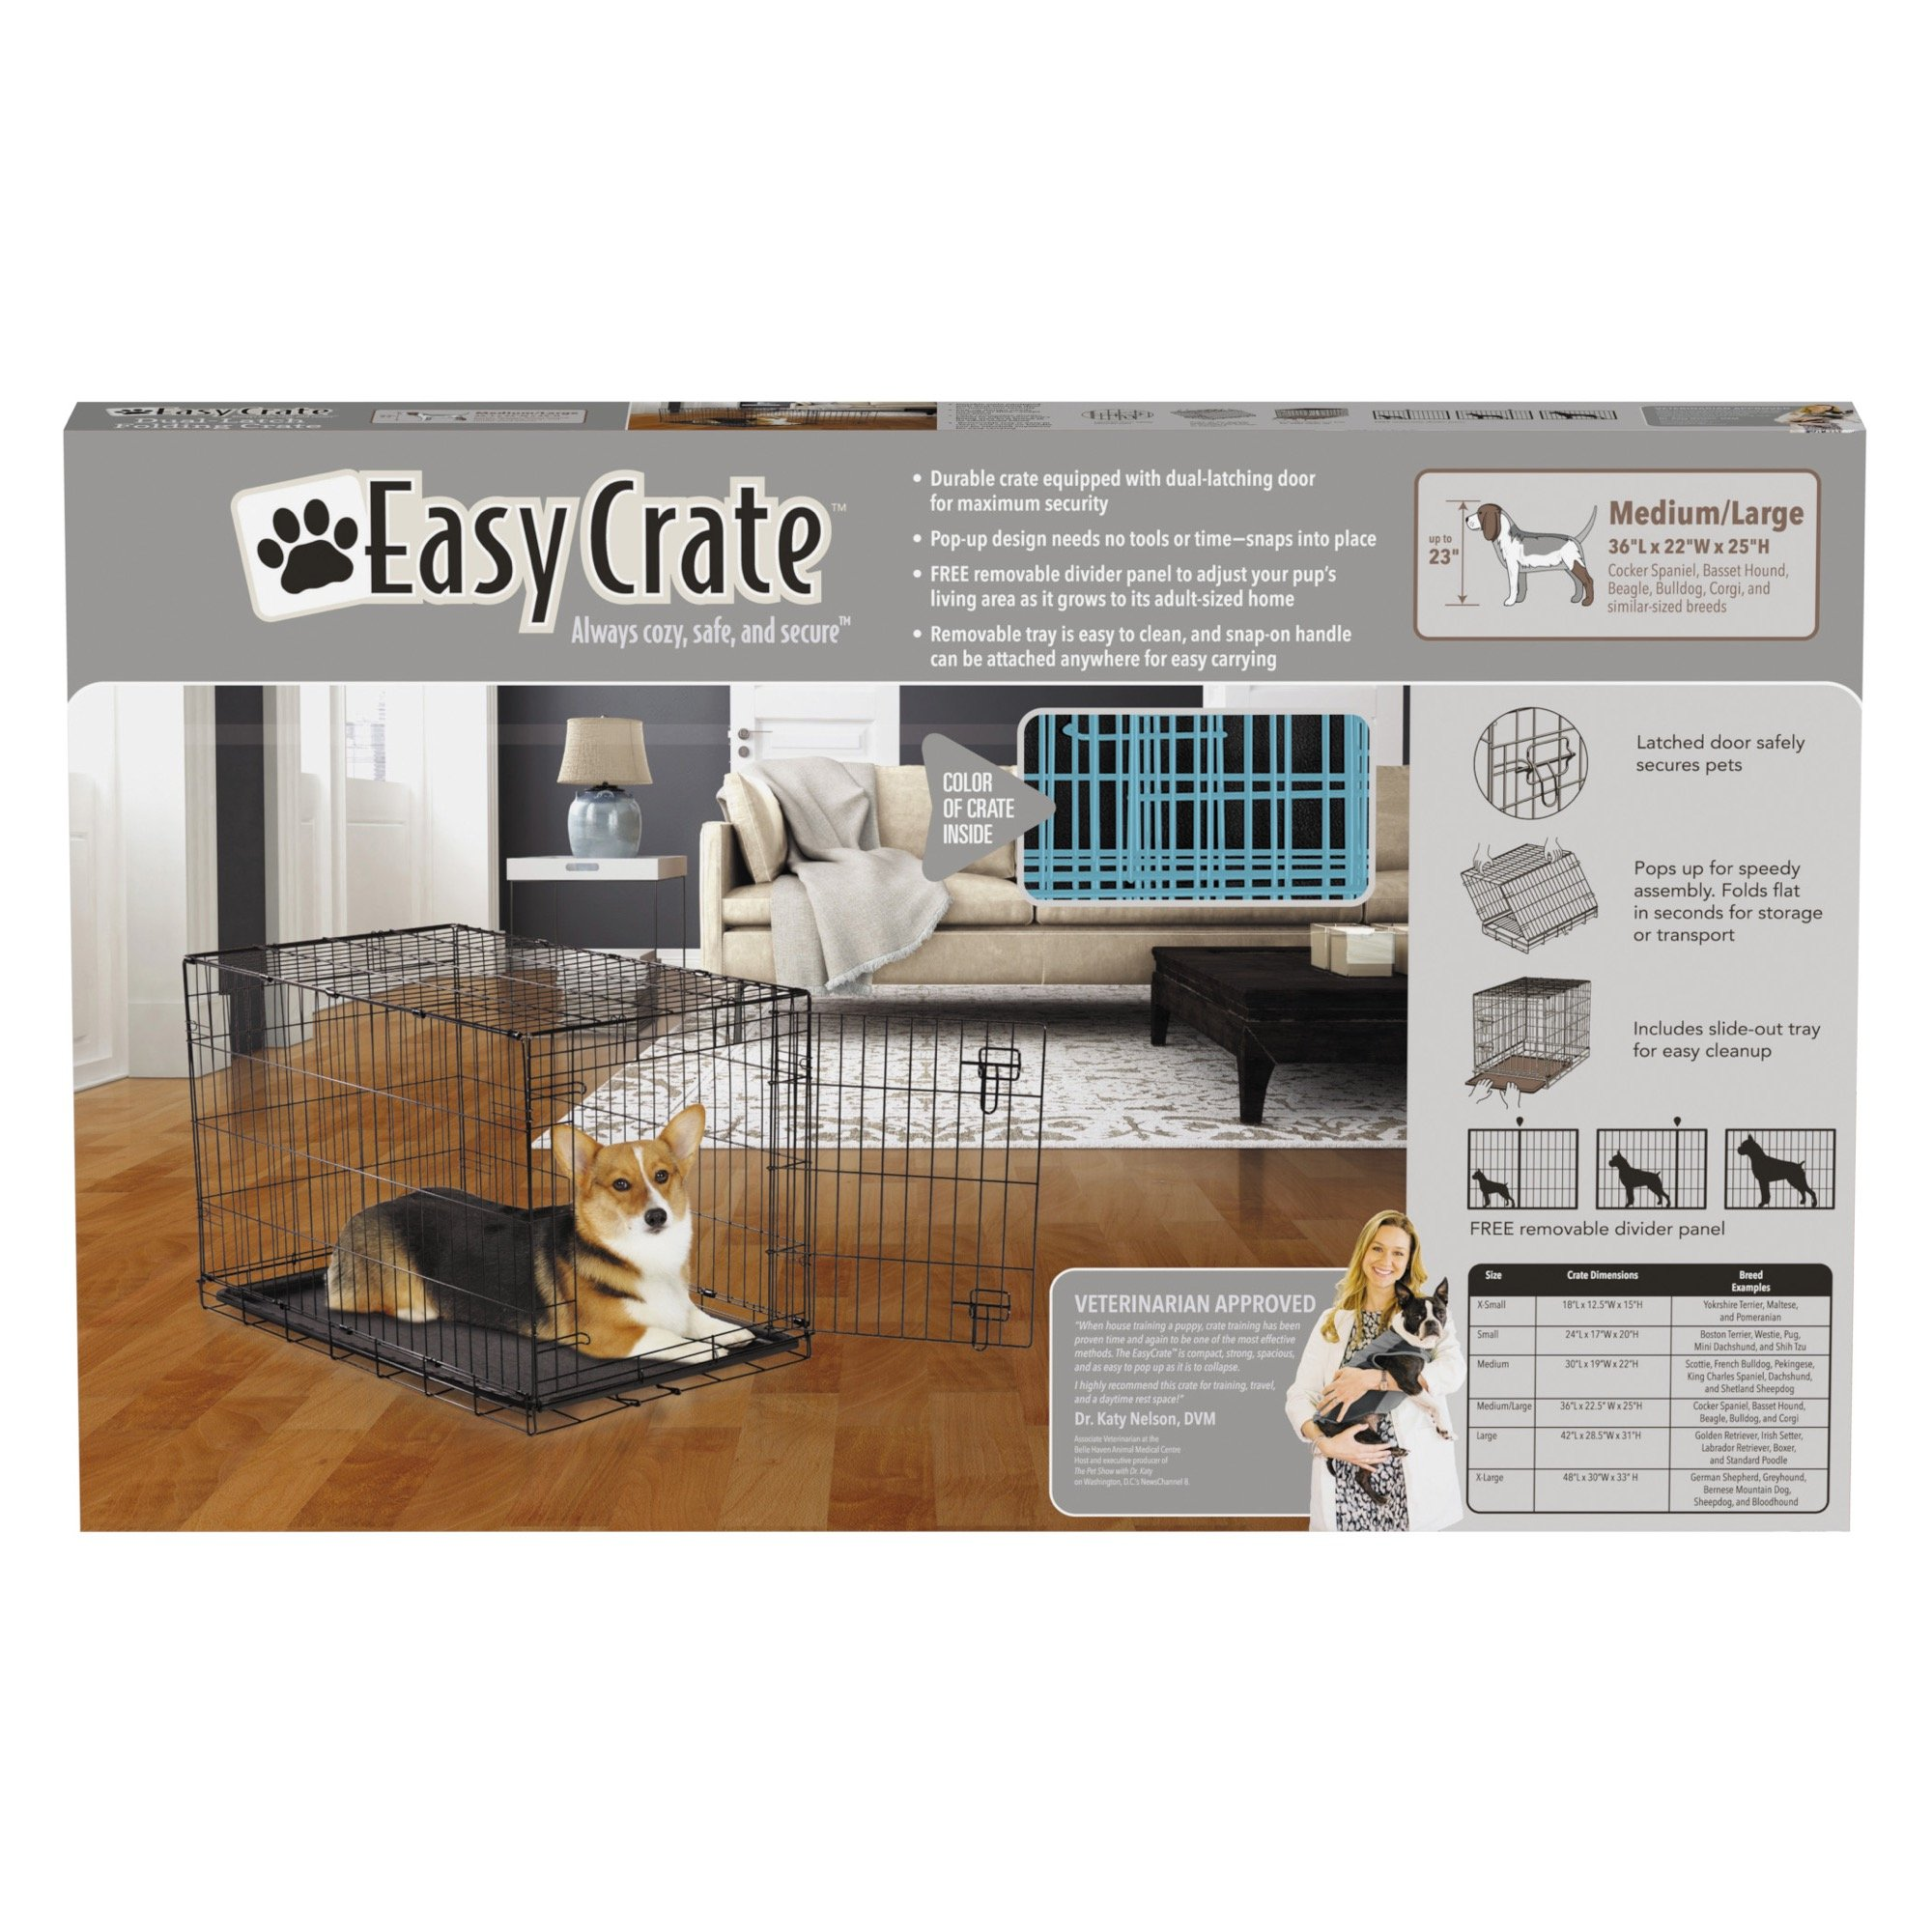 Easy Dual Latching Dog Crate, Medium/Large, Teal by Easy (Image #4)